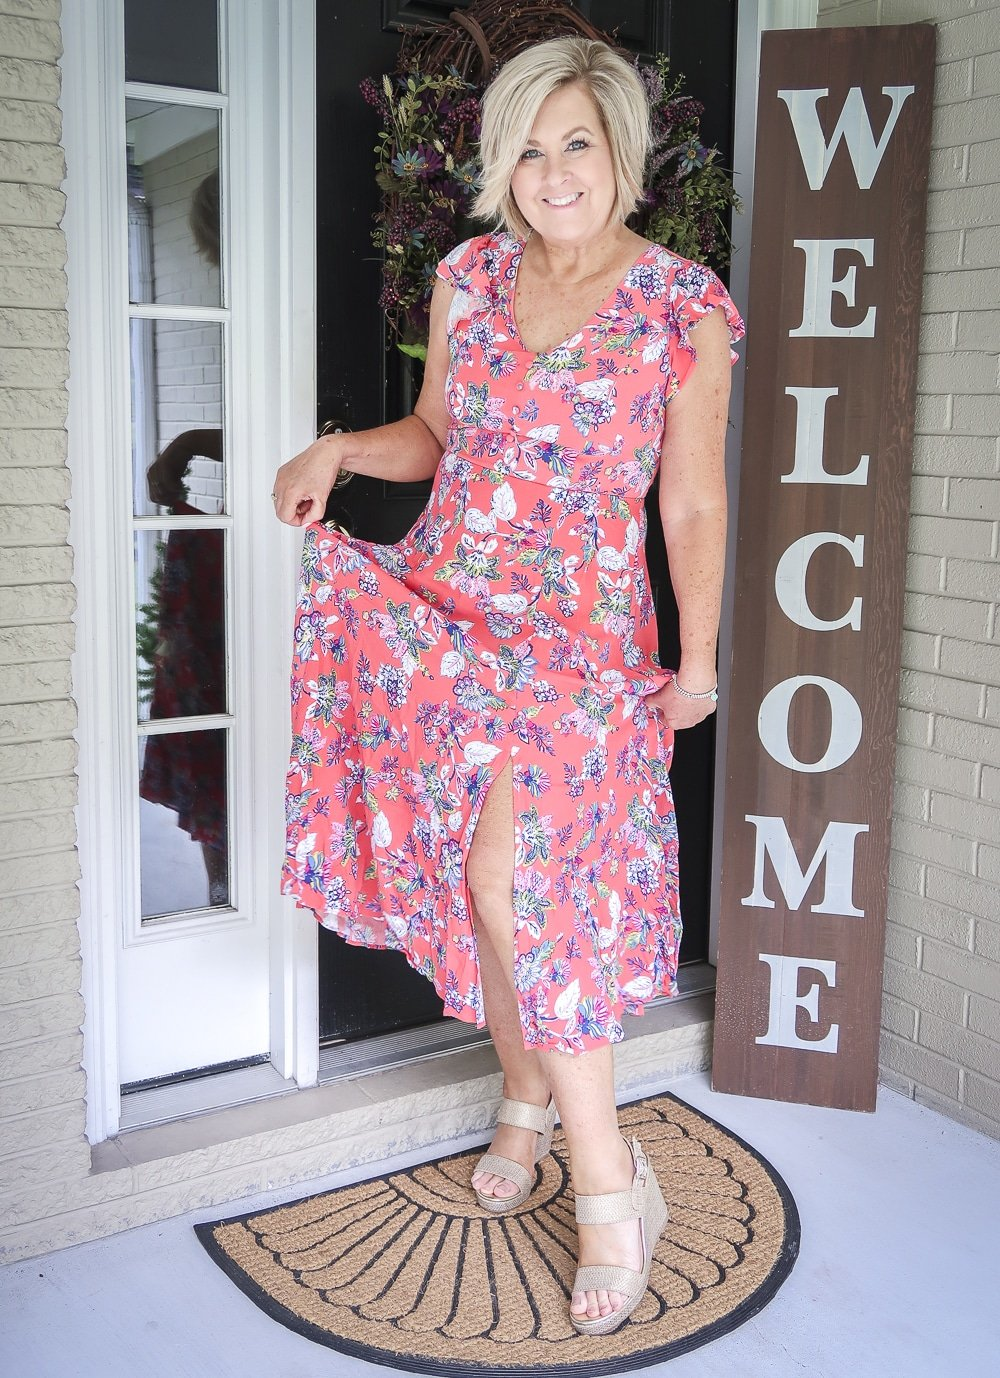 Fashion Blogger 50 Is Not Old is wearing a beautiful summer coral dress and gold espadrille shoes from Walmart